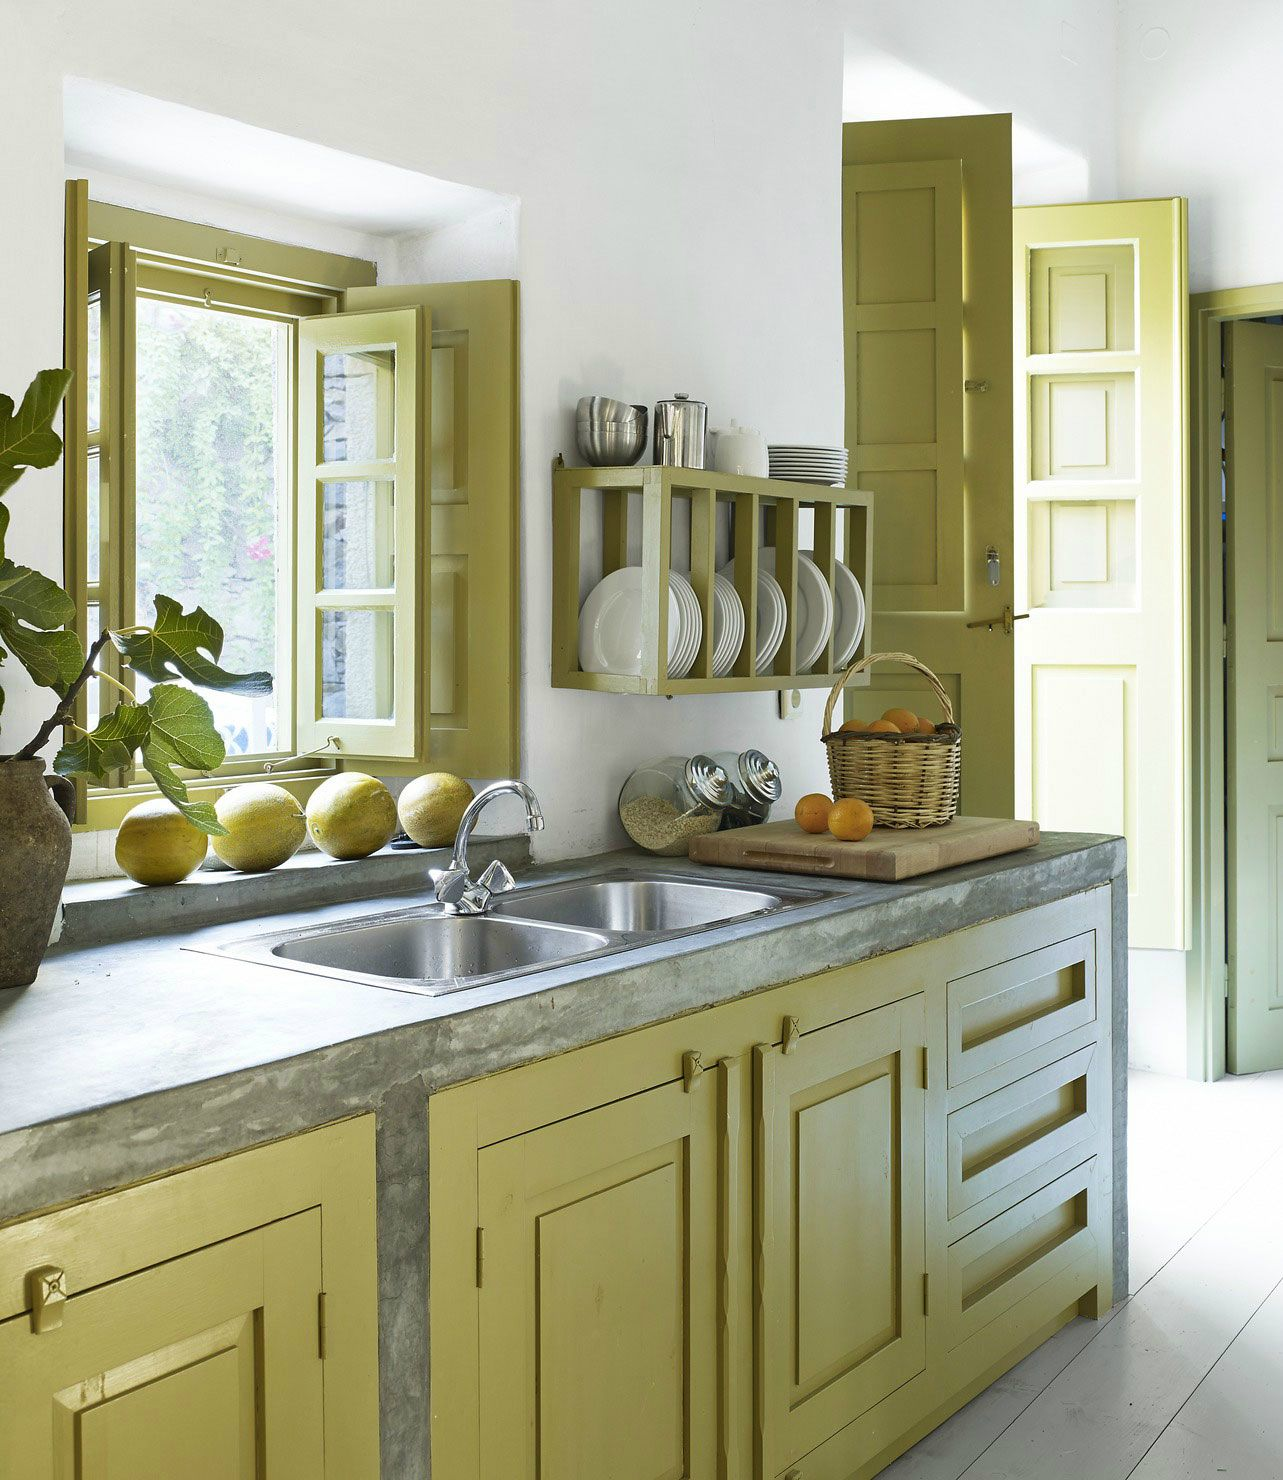 Kitchen Color Trends elle decor predicts the color trends for 2017 | yellow kitchen